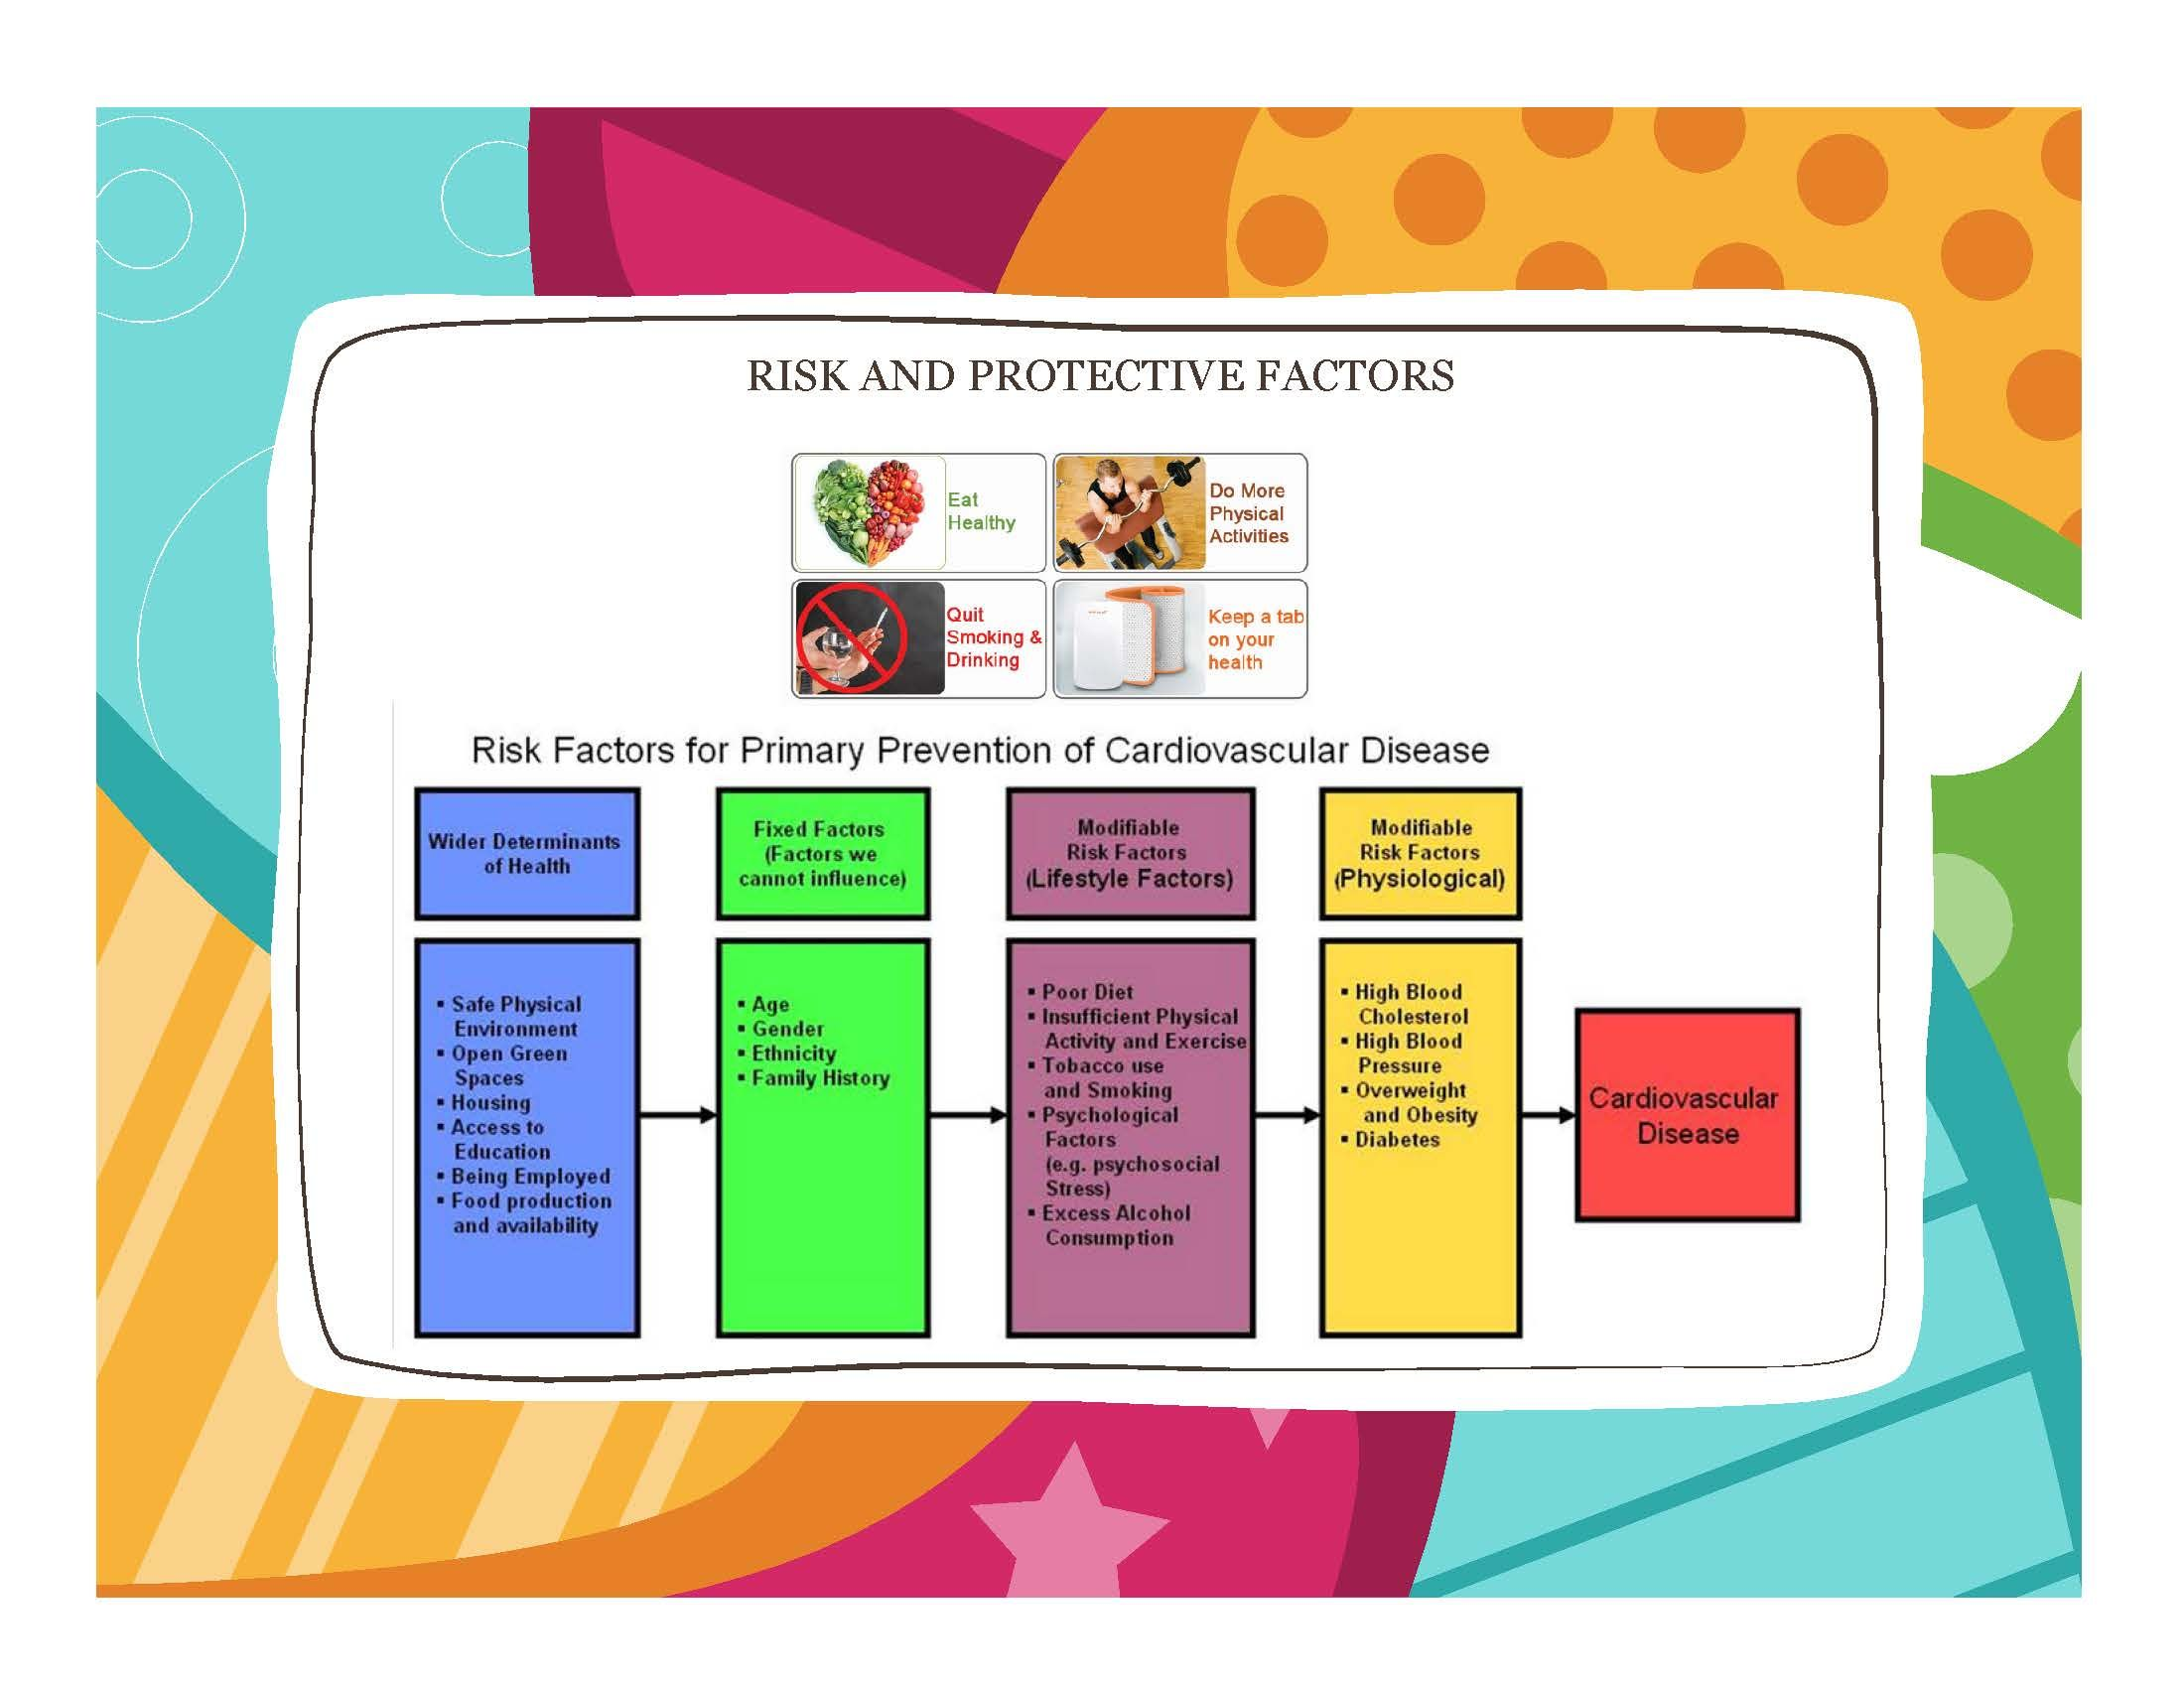 CVD risk and protective factors remember proactive